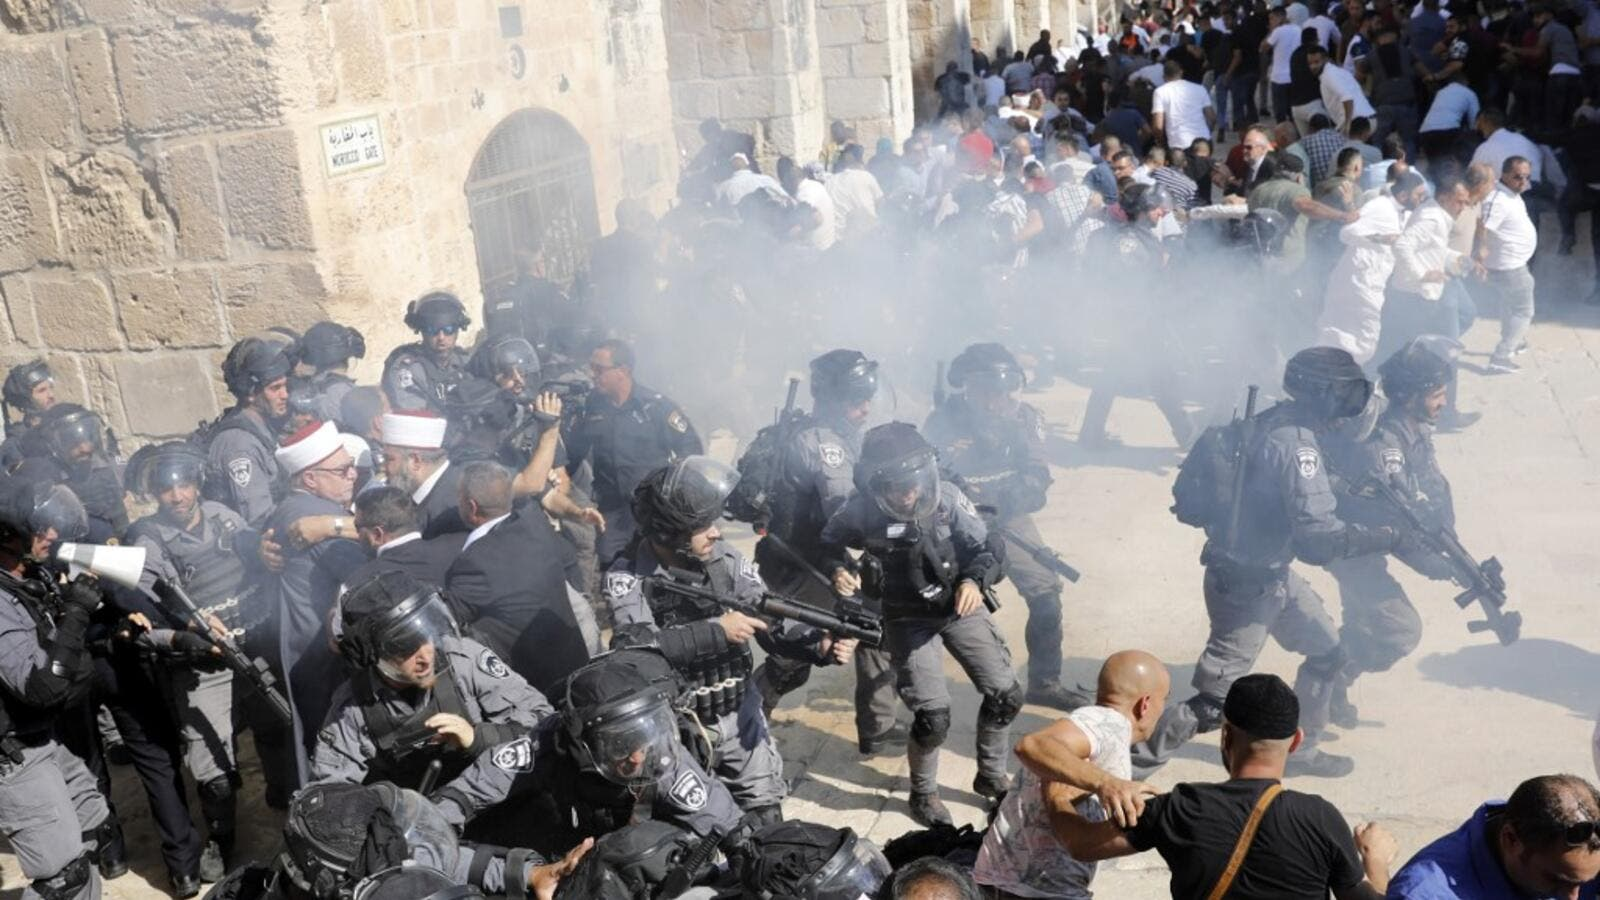 Israeli security forces fire sound grenades inside the Al-Aqsa Mosque compound in the Old City of Jerusalem on August 11, 2019, as clashes broke out during the overlapping Jewish and Muslim holidays of Eid al-Adha and the Tisha B'av holdiay. (AFP)